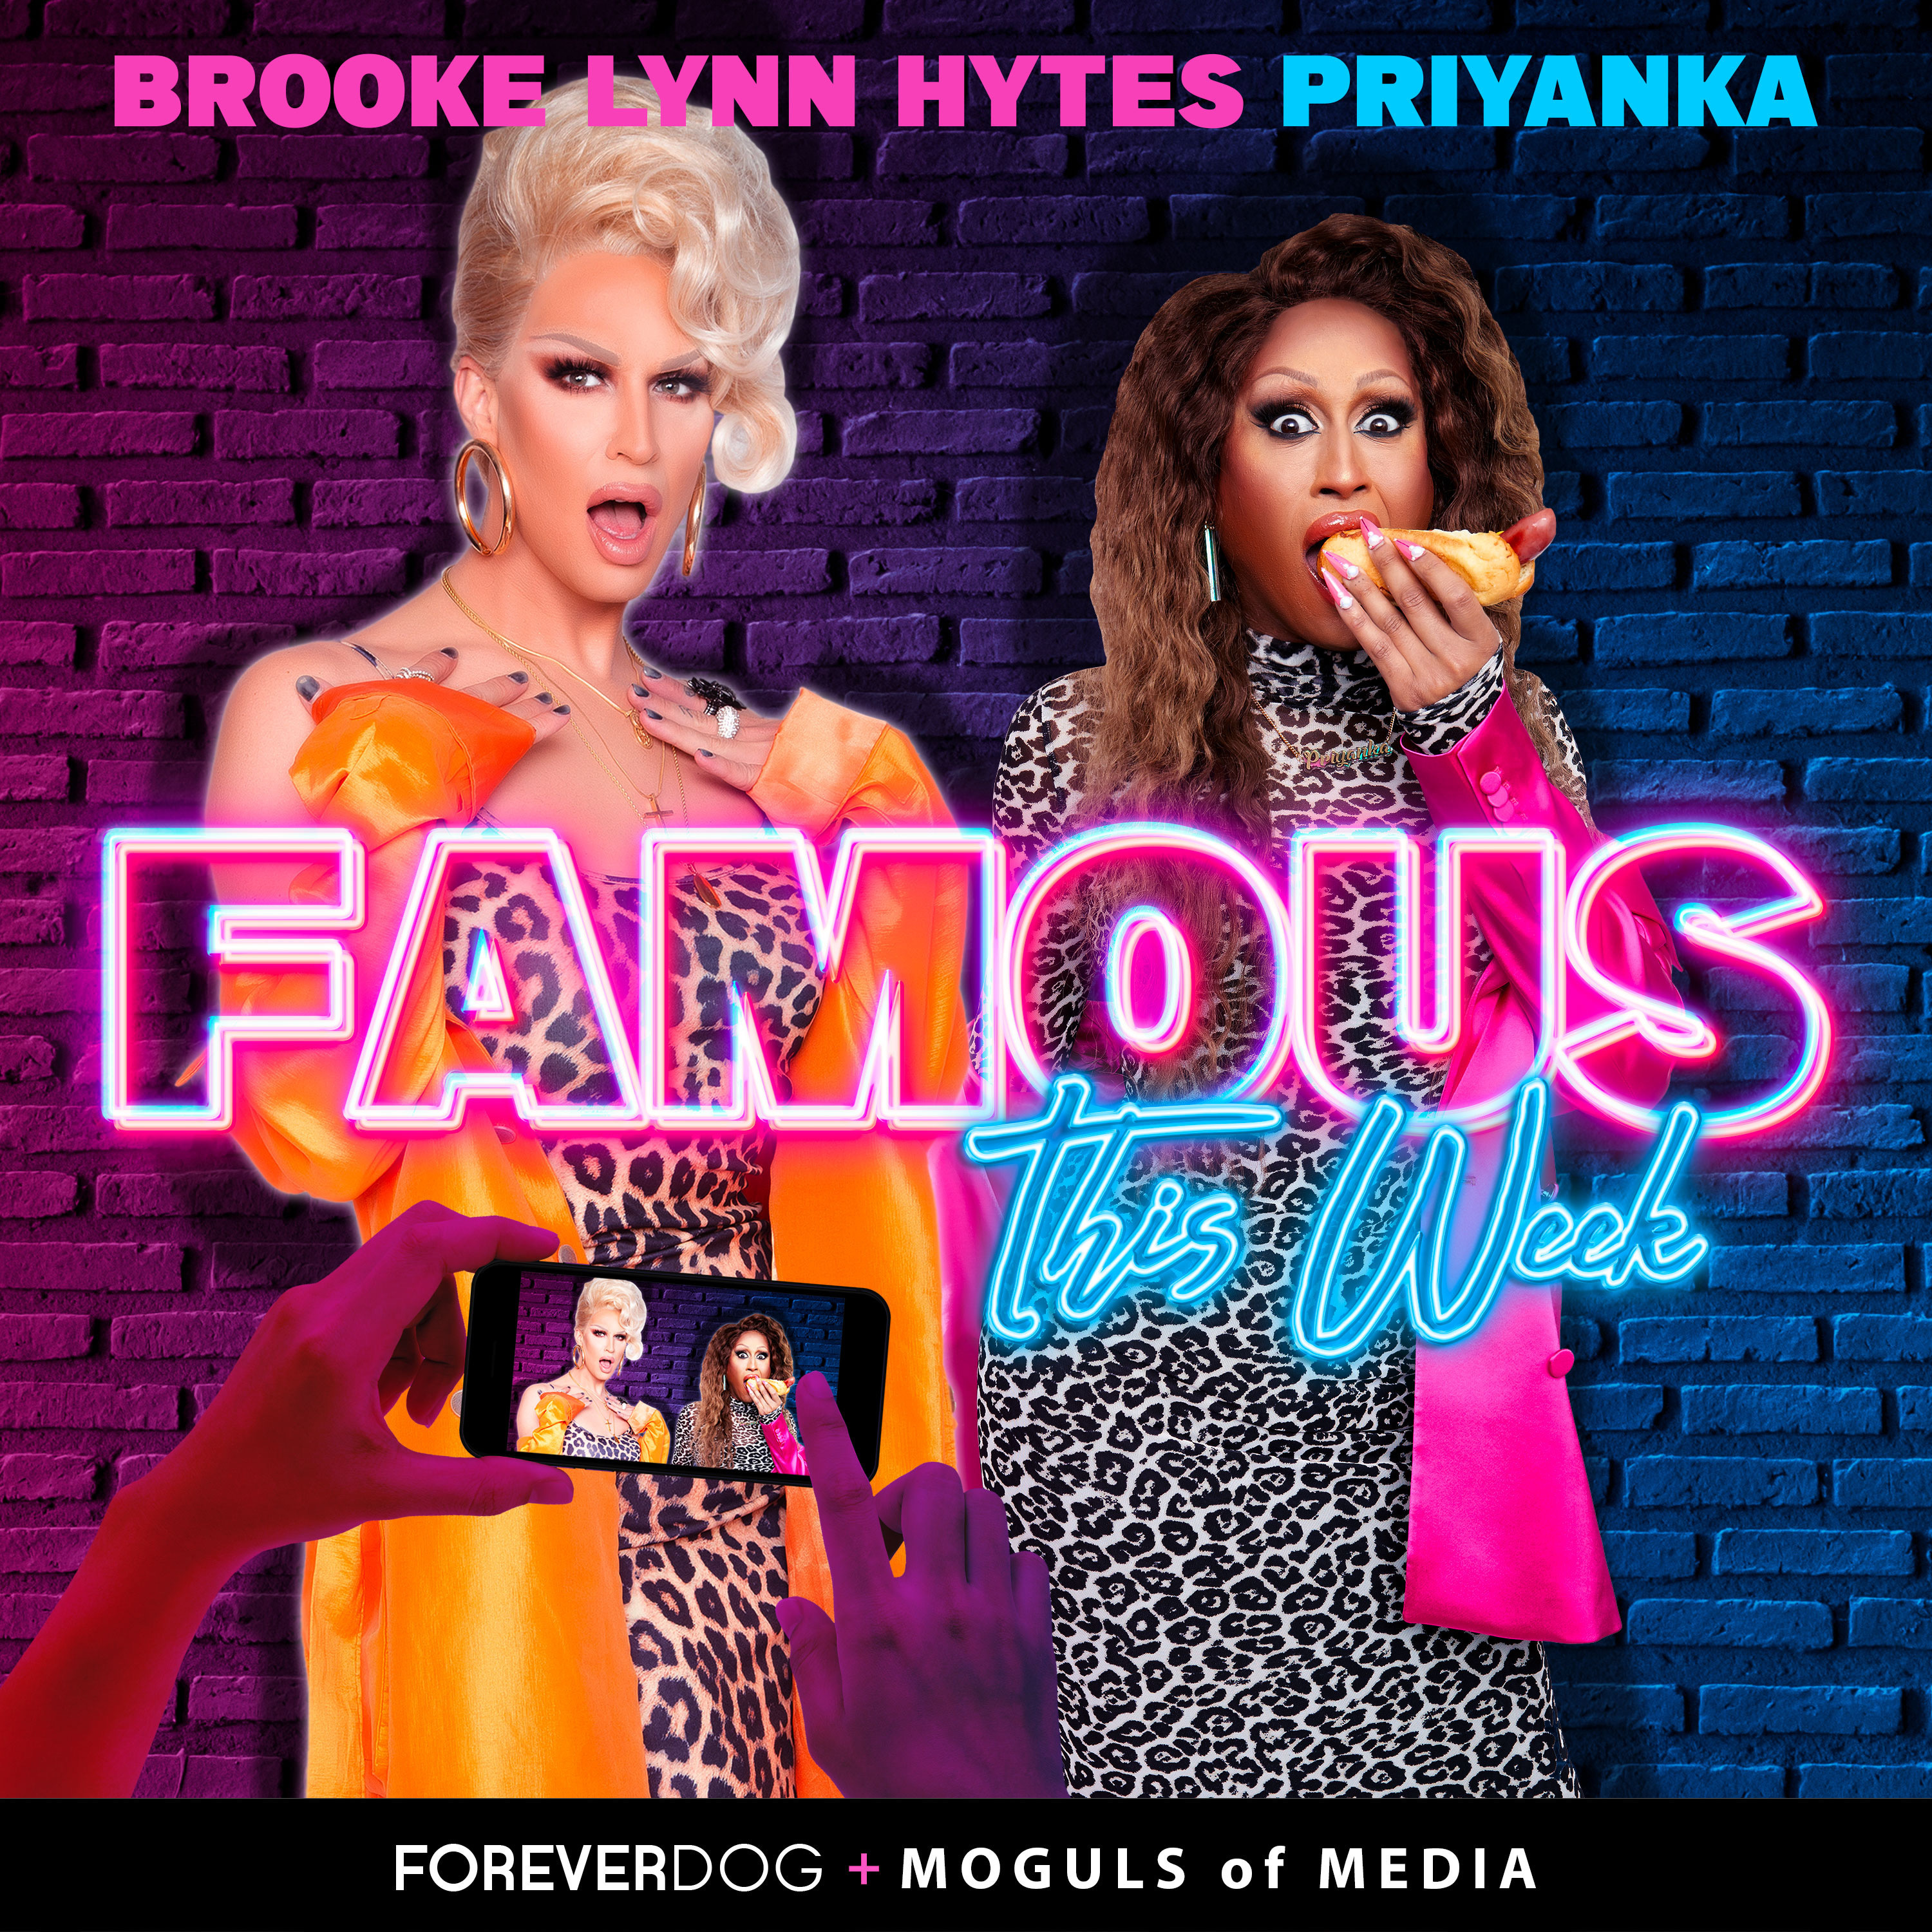 Famous This Week with Priyanka & Brooke Lynn podcast tile